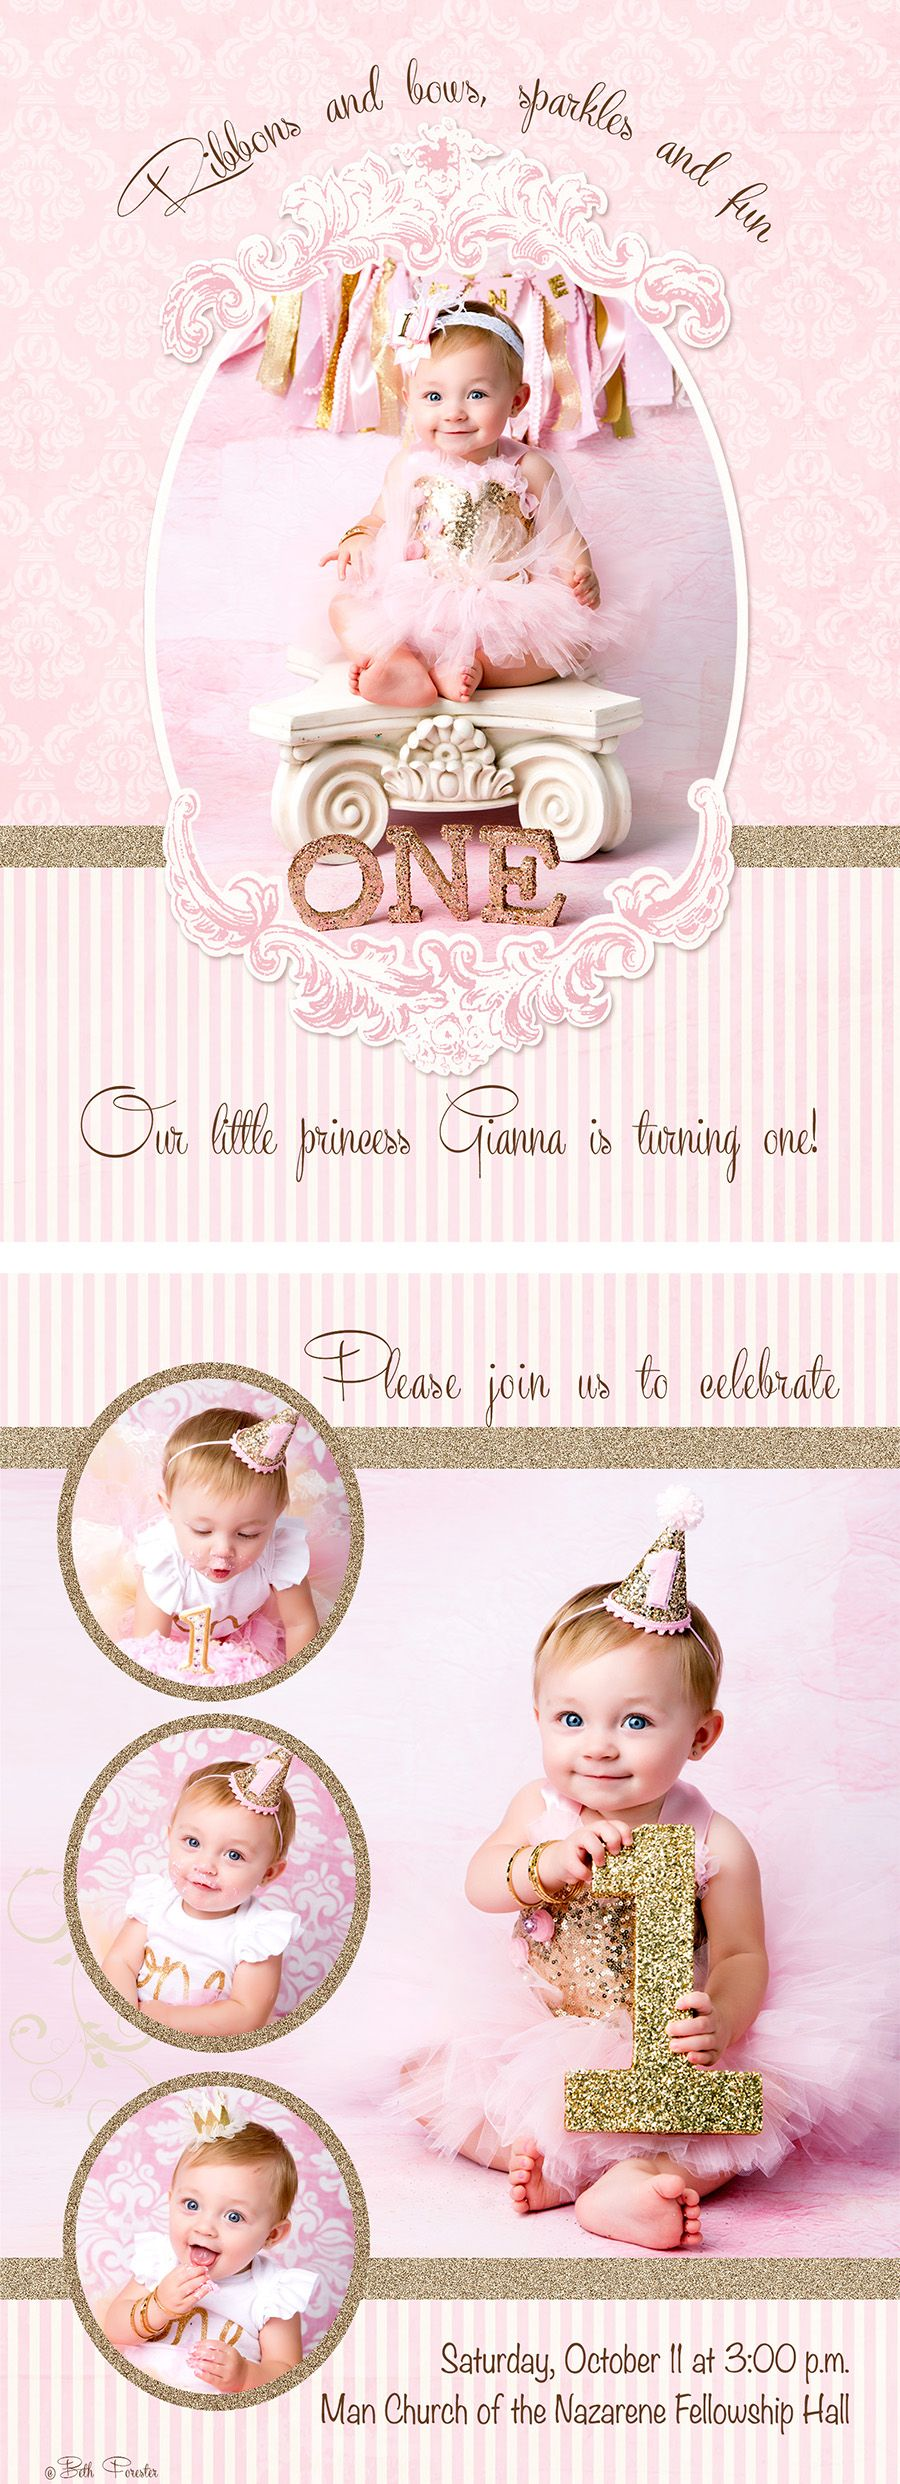 first birthday party invitation pink gold glitter cake